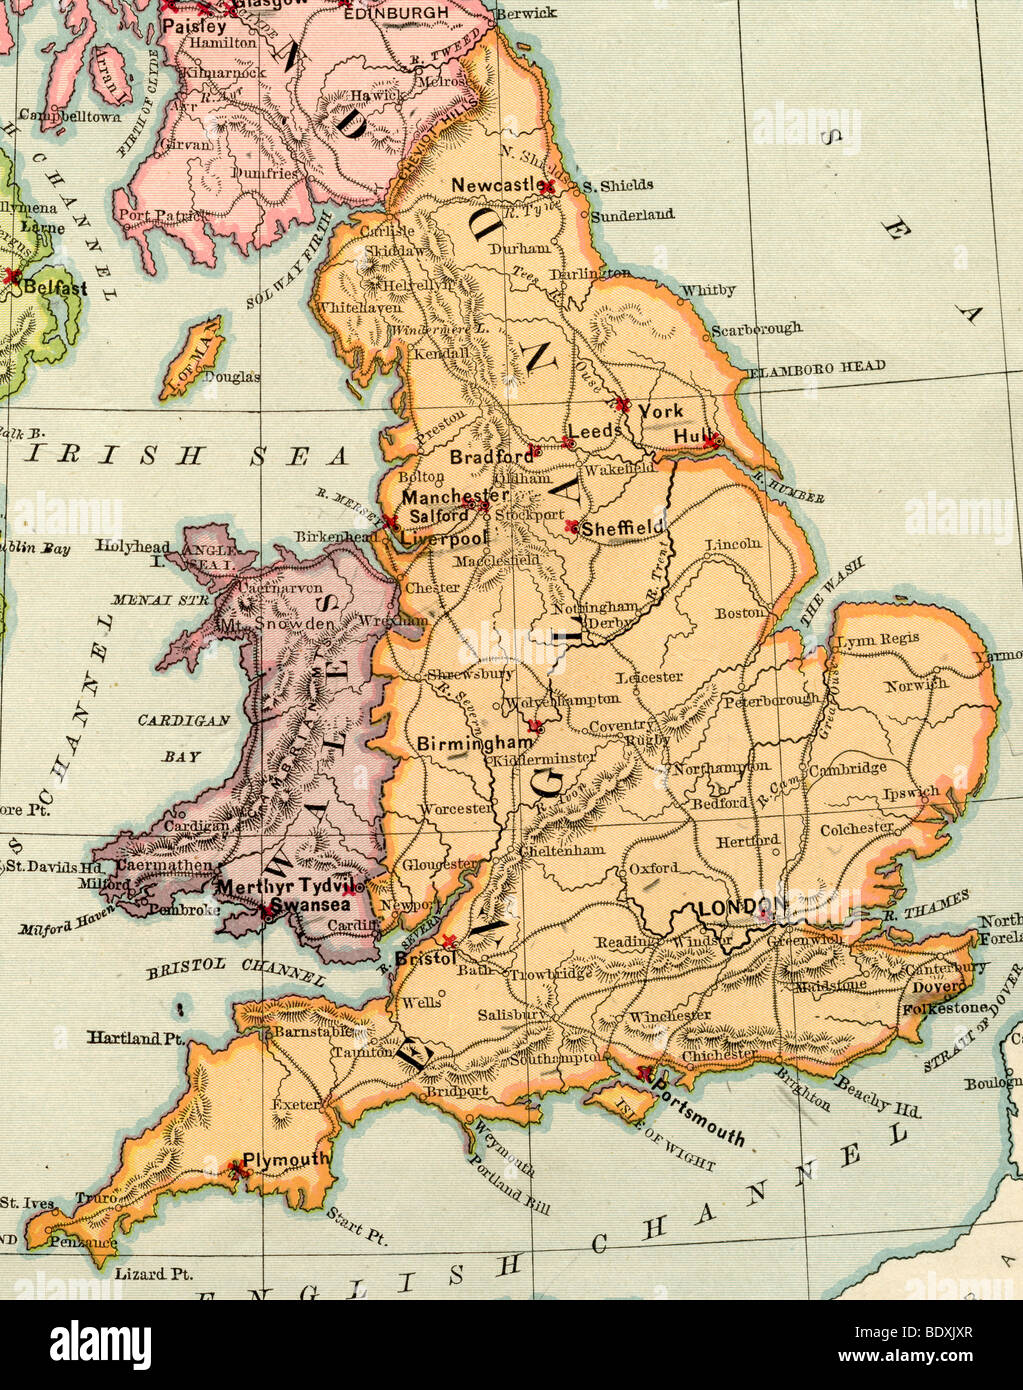 Original old map of England and Wales from 1875 geography textbook